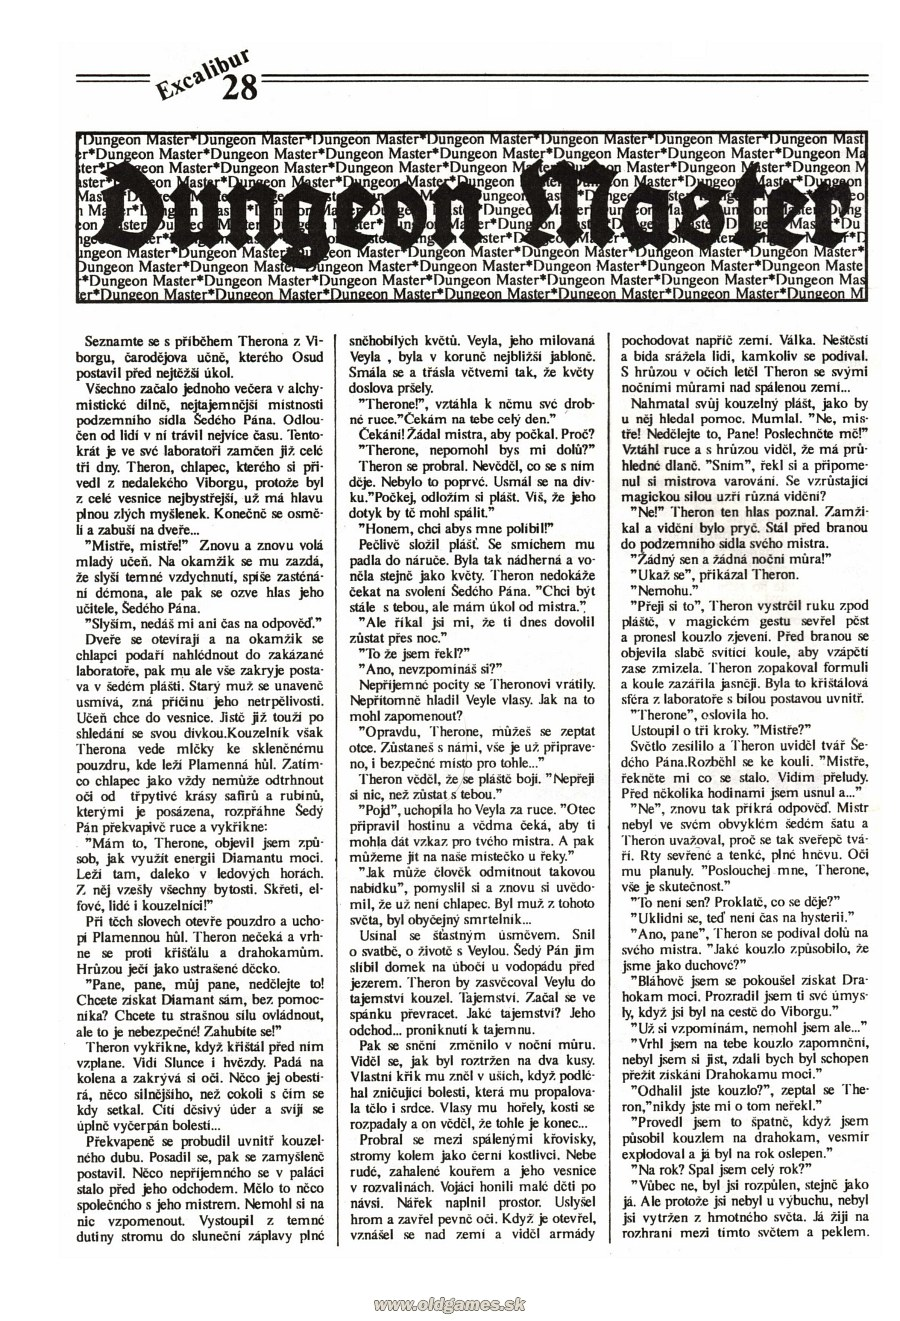 Dungeon Master Guide published in Czech magazine 'Excalibur', Issue #4 July 1991, Page 28